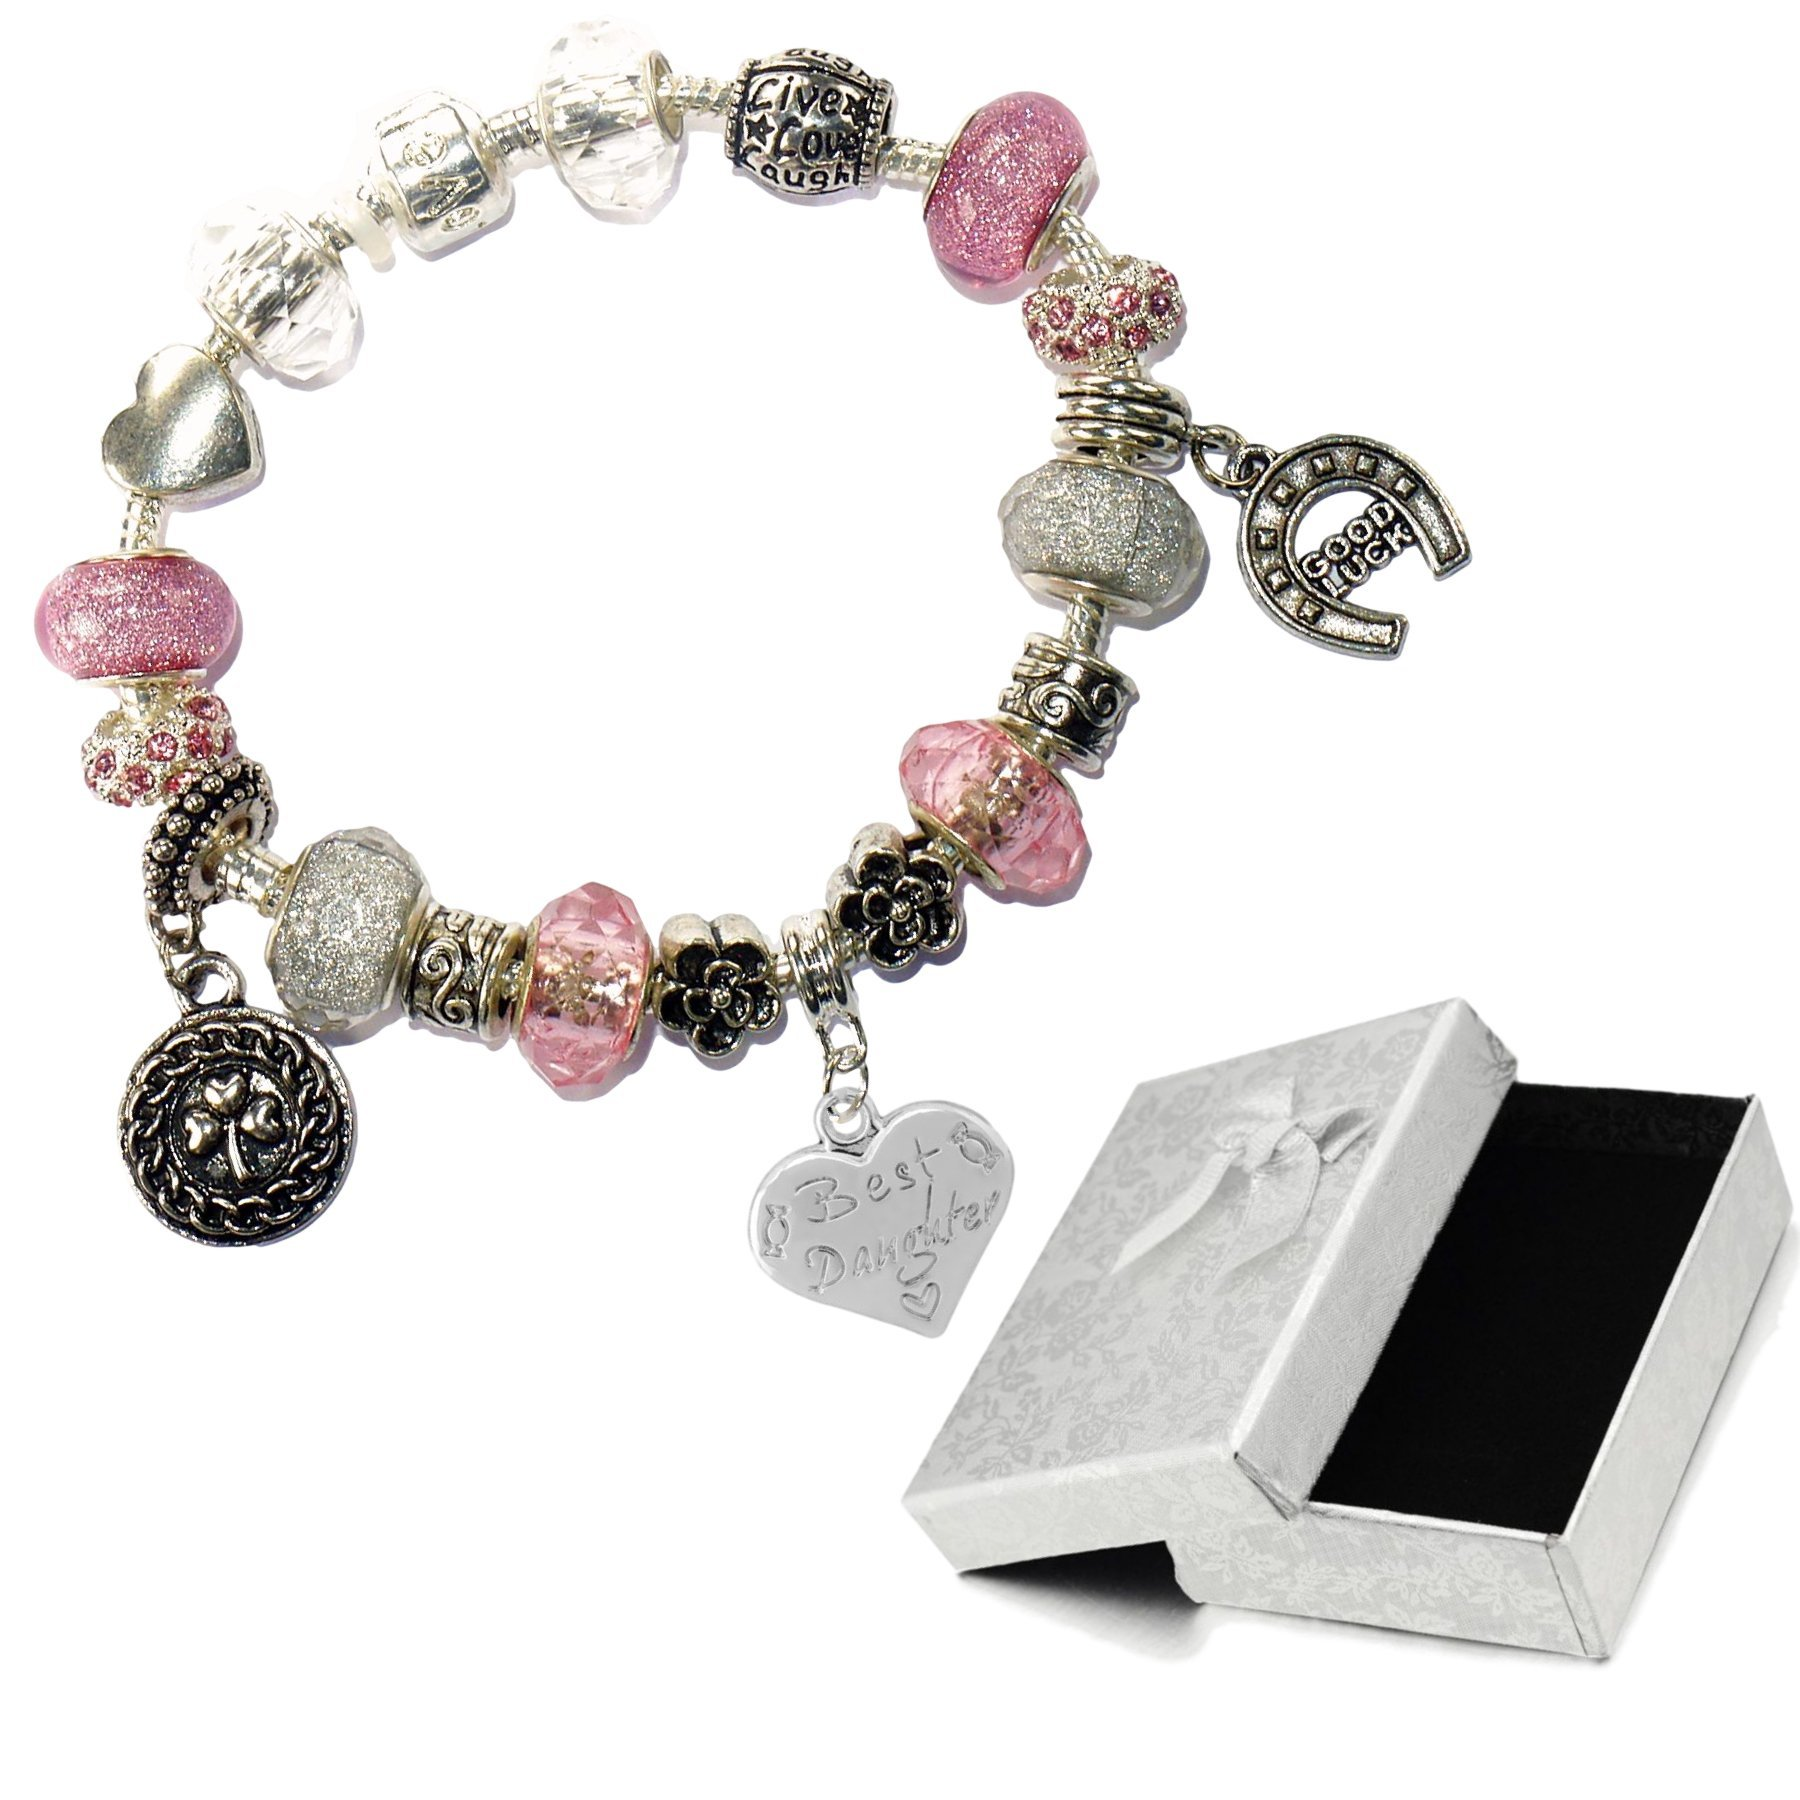 Charm Buddy Best Daughter Pink Silver Crystal Good Luck Pandora Style Bracelet With Charms Gift Box